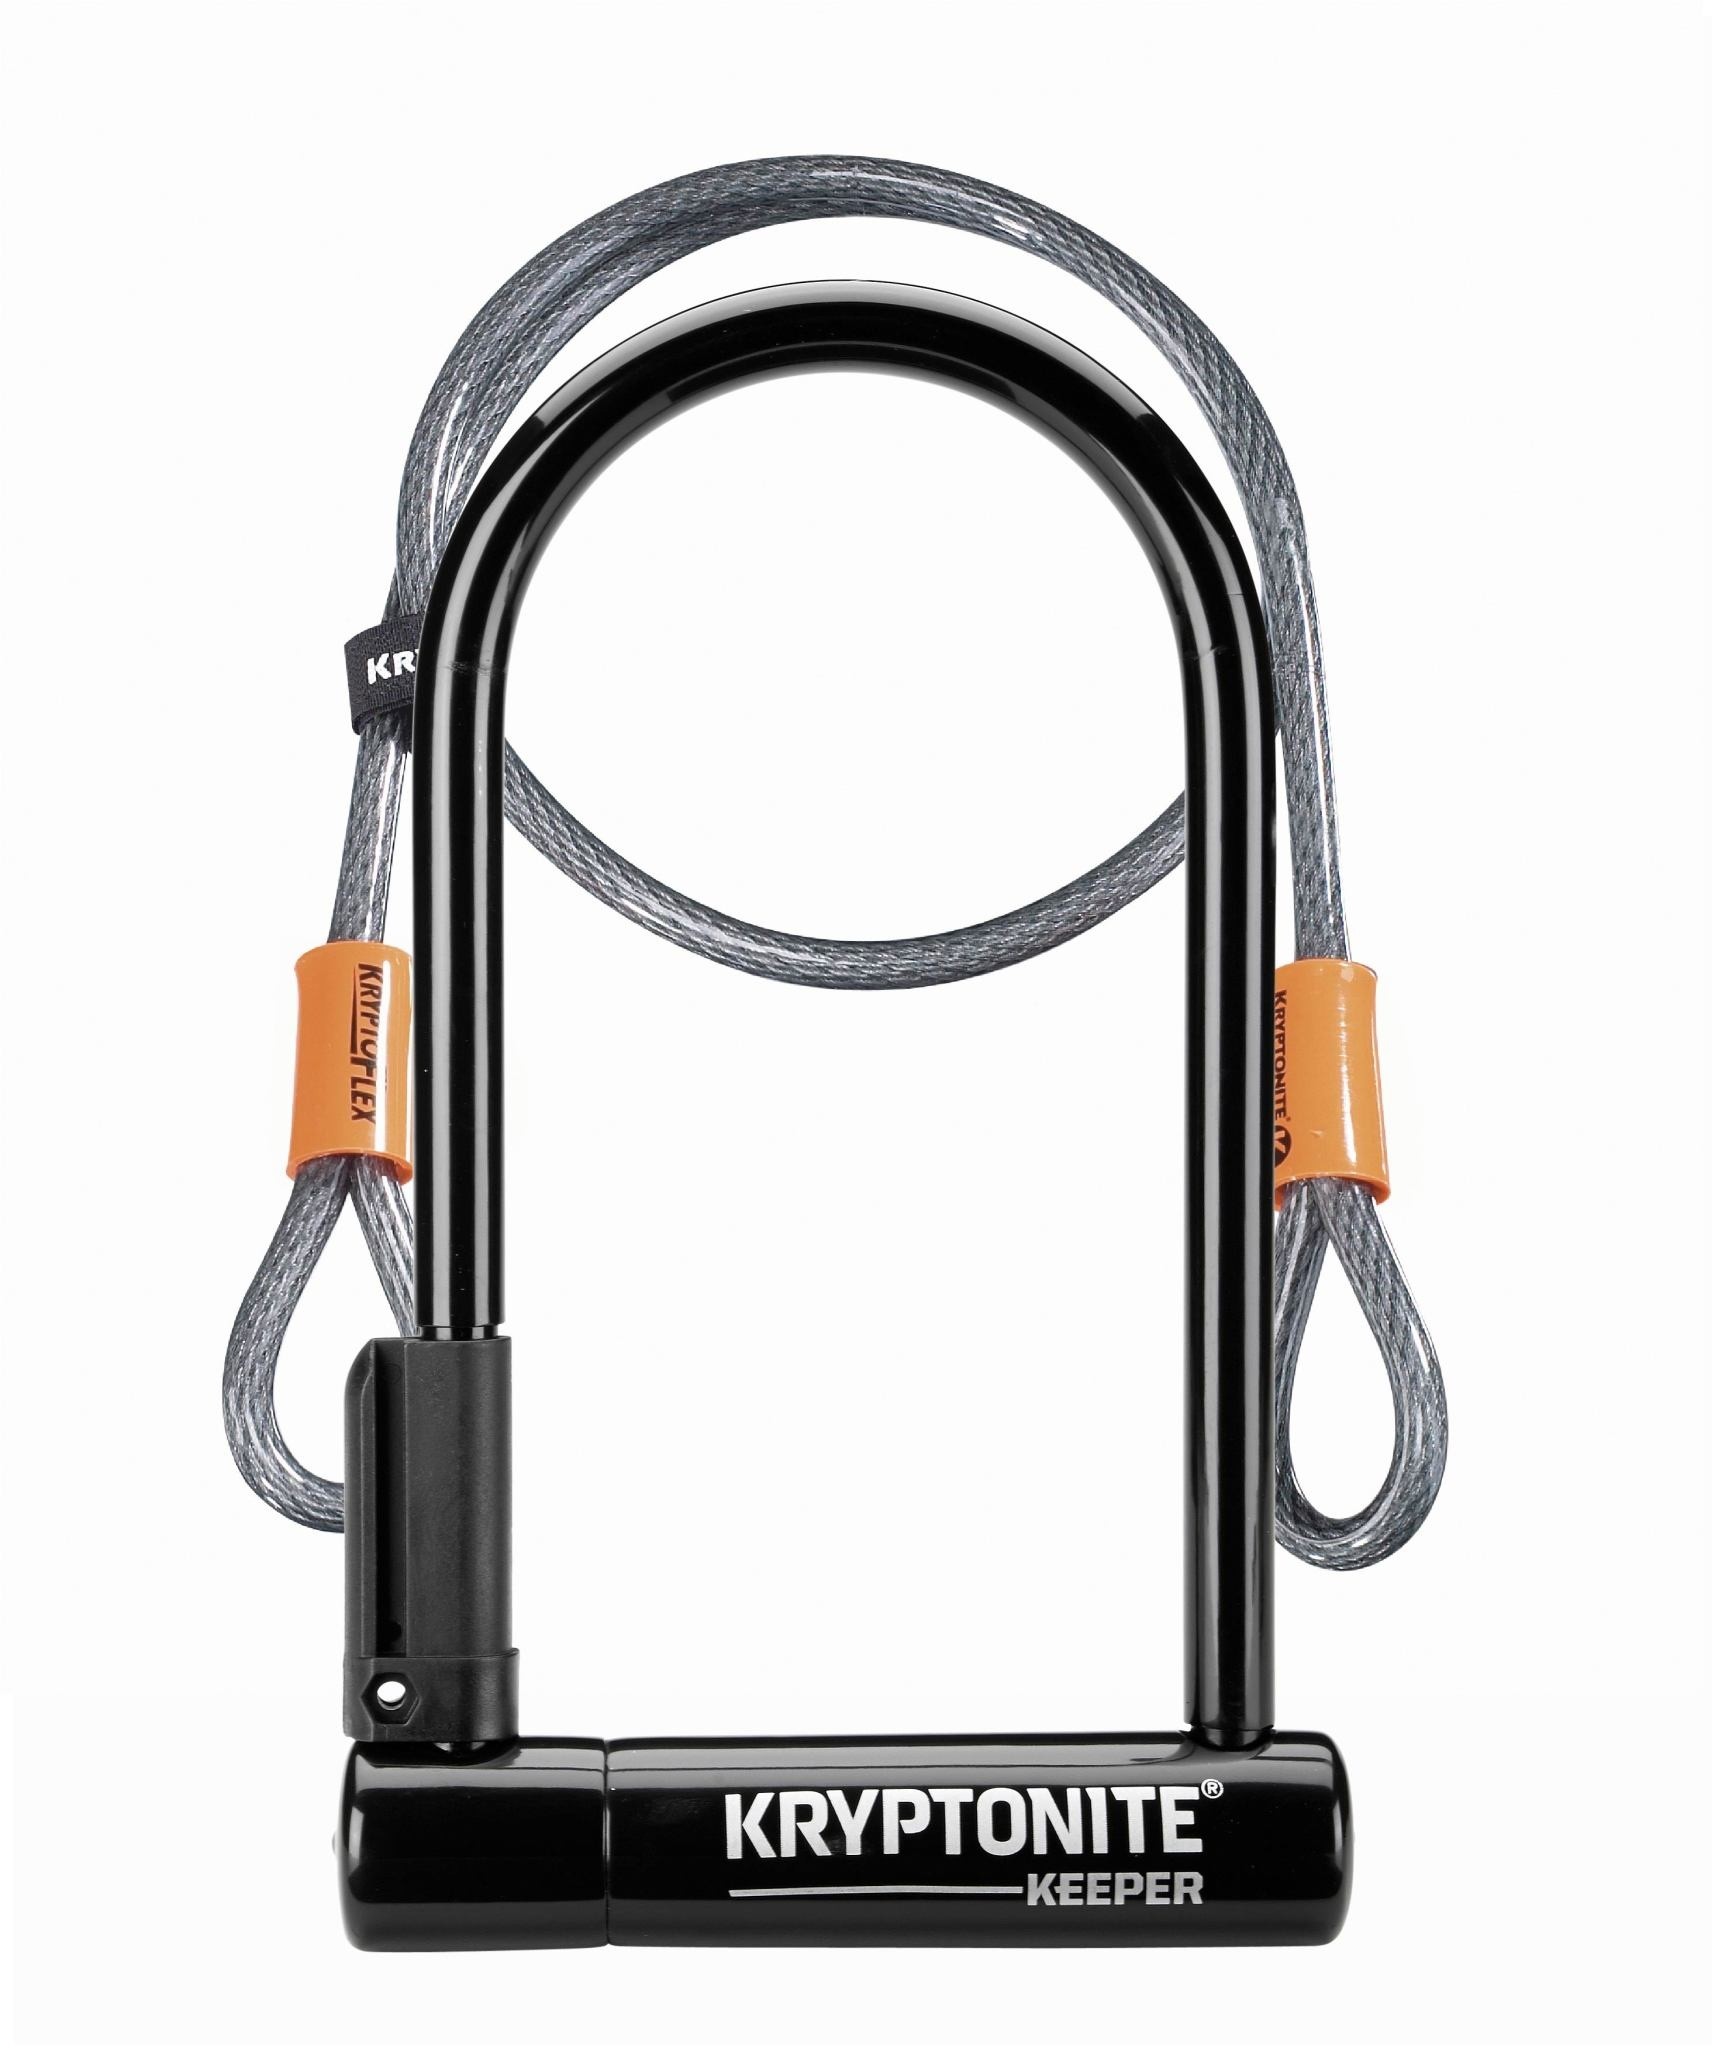 KRYPTONITE Kryptonite Keeper 12 Standard U Lock with 4' Flex Cable